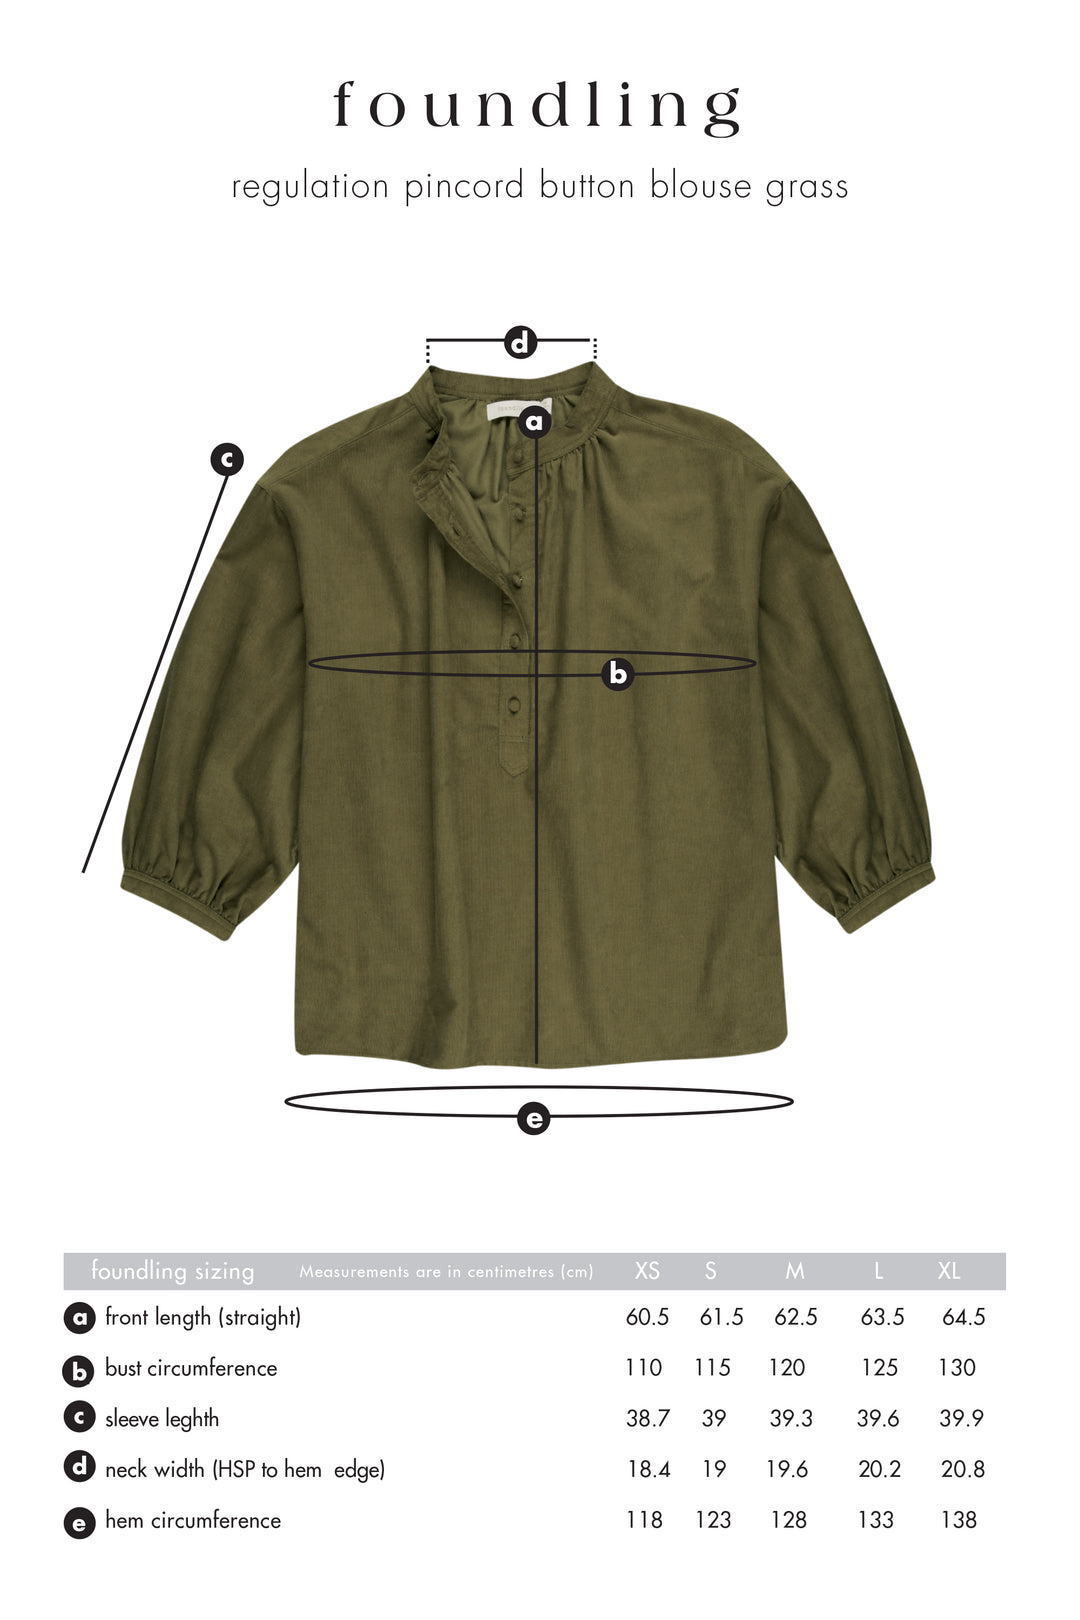 Regulation Pincord Button Blouse Grass